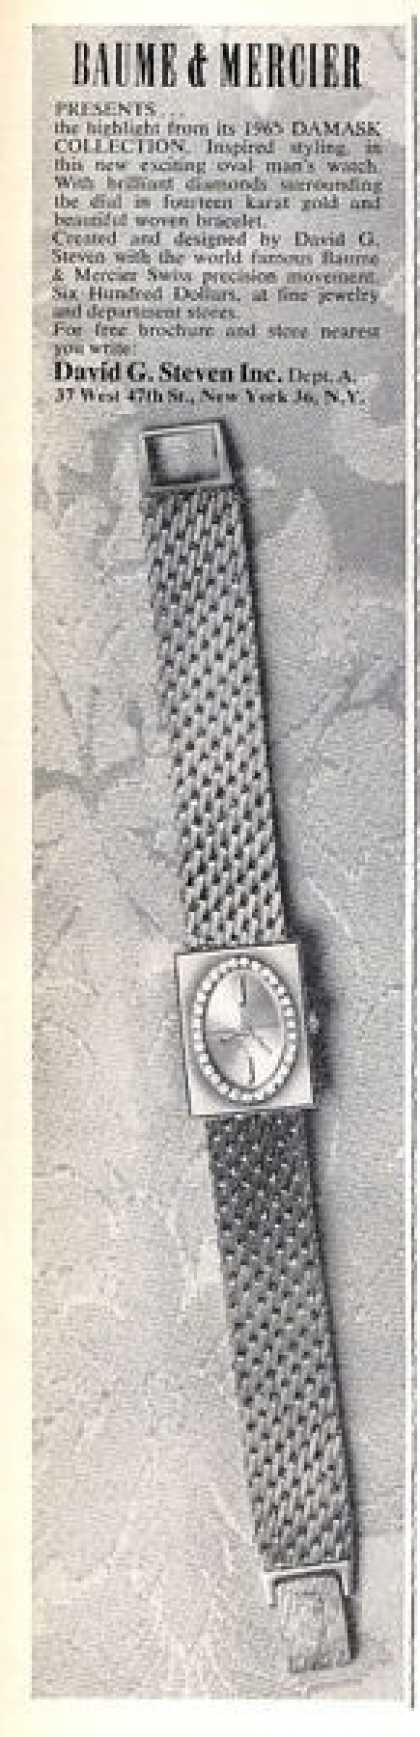 Baume & Mercier Damask Watch (1965)